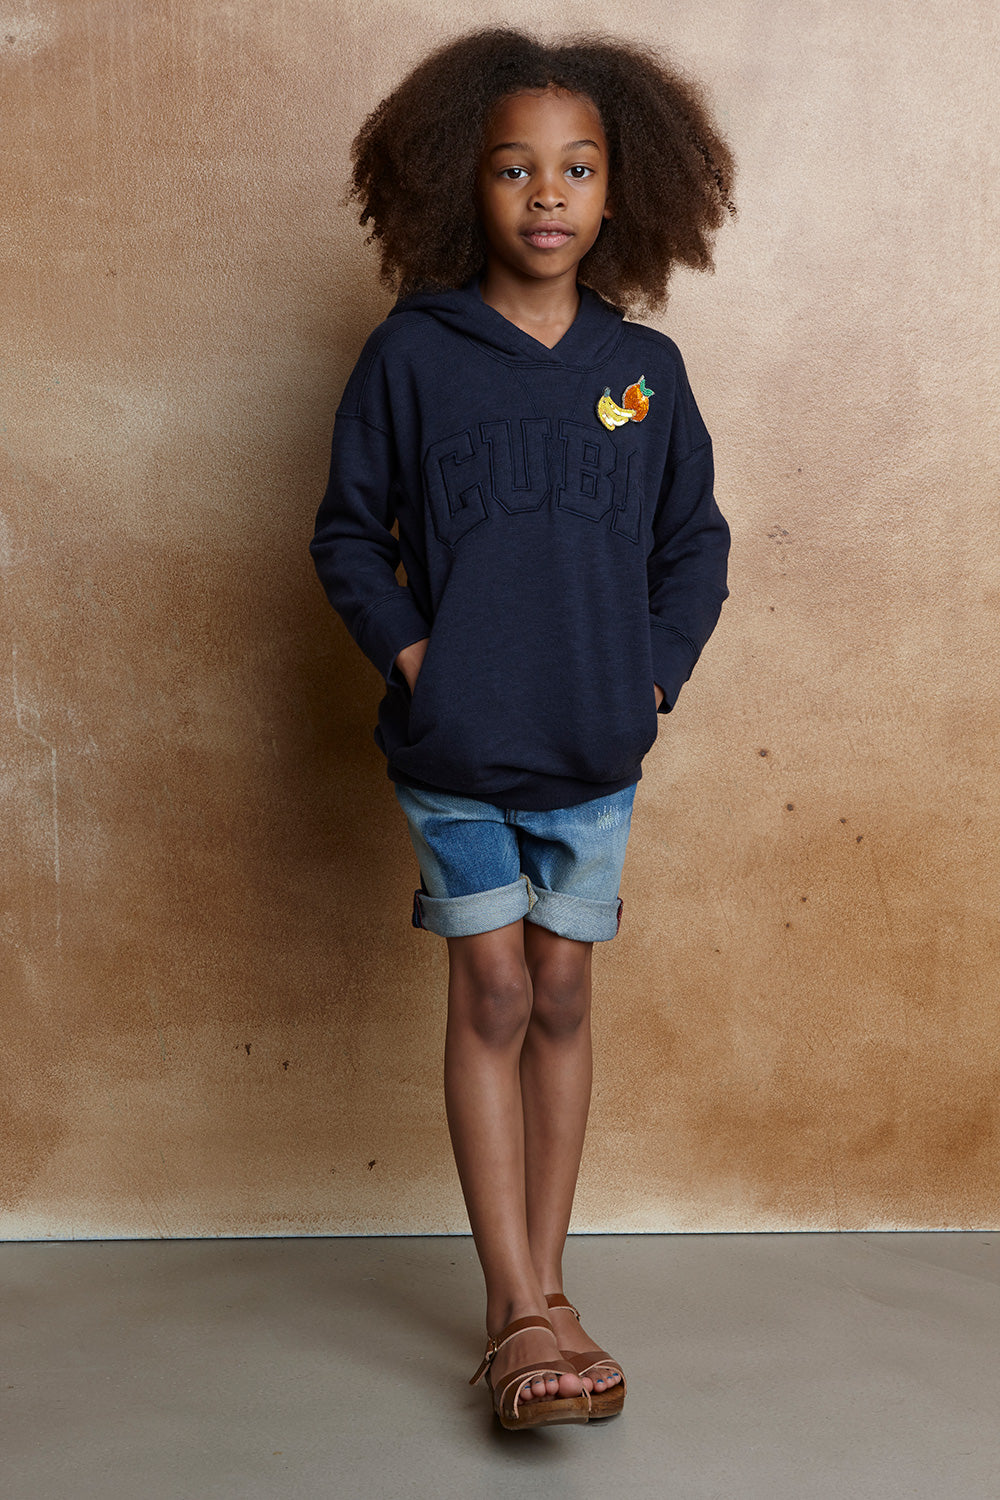 Lookbook kids 4